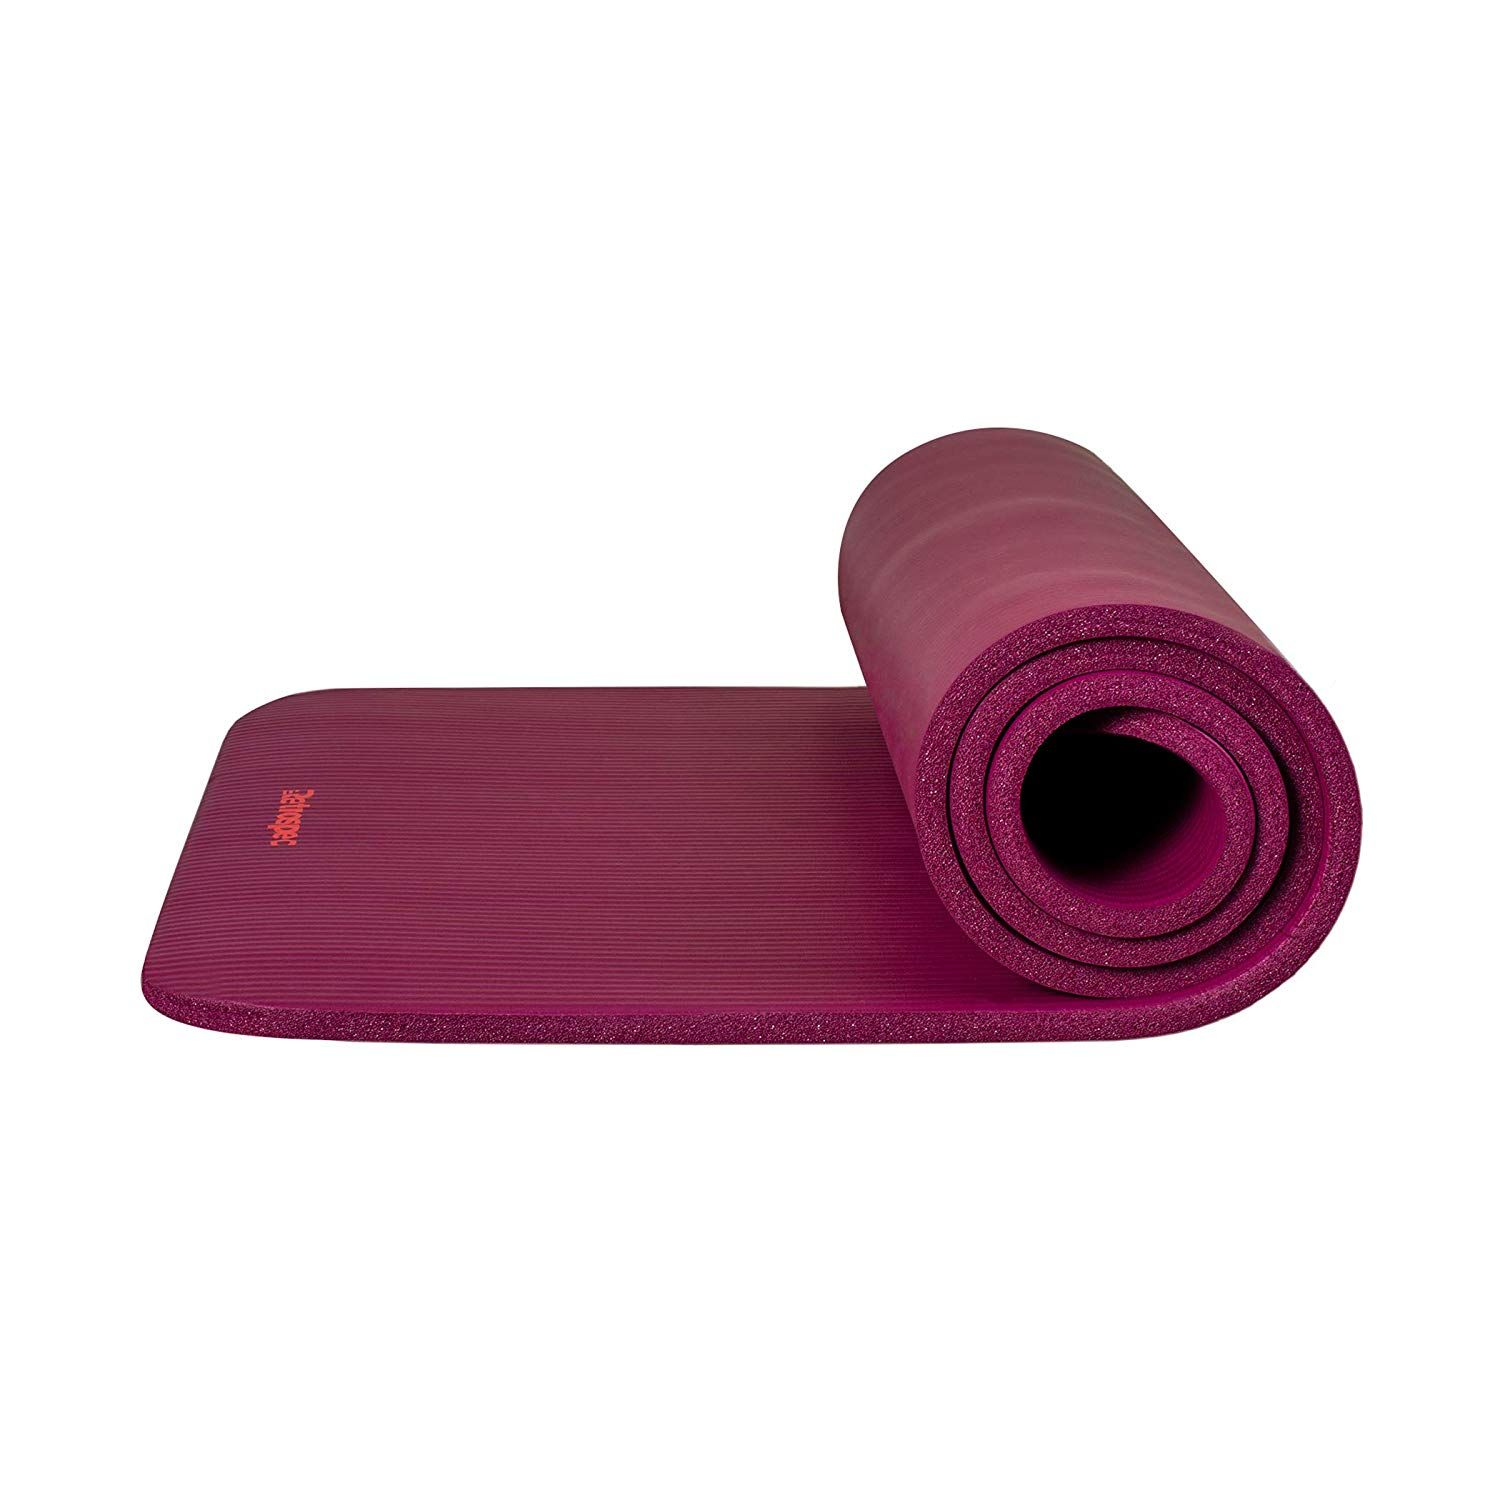 Dralegend Yoga Mat Exercise Fitness Mat High Density Non Slip Workout Mat Classic 1 4 Inch In 2020 Mat Exercises Pilates Workout Yoga Mat